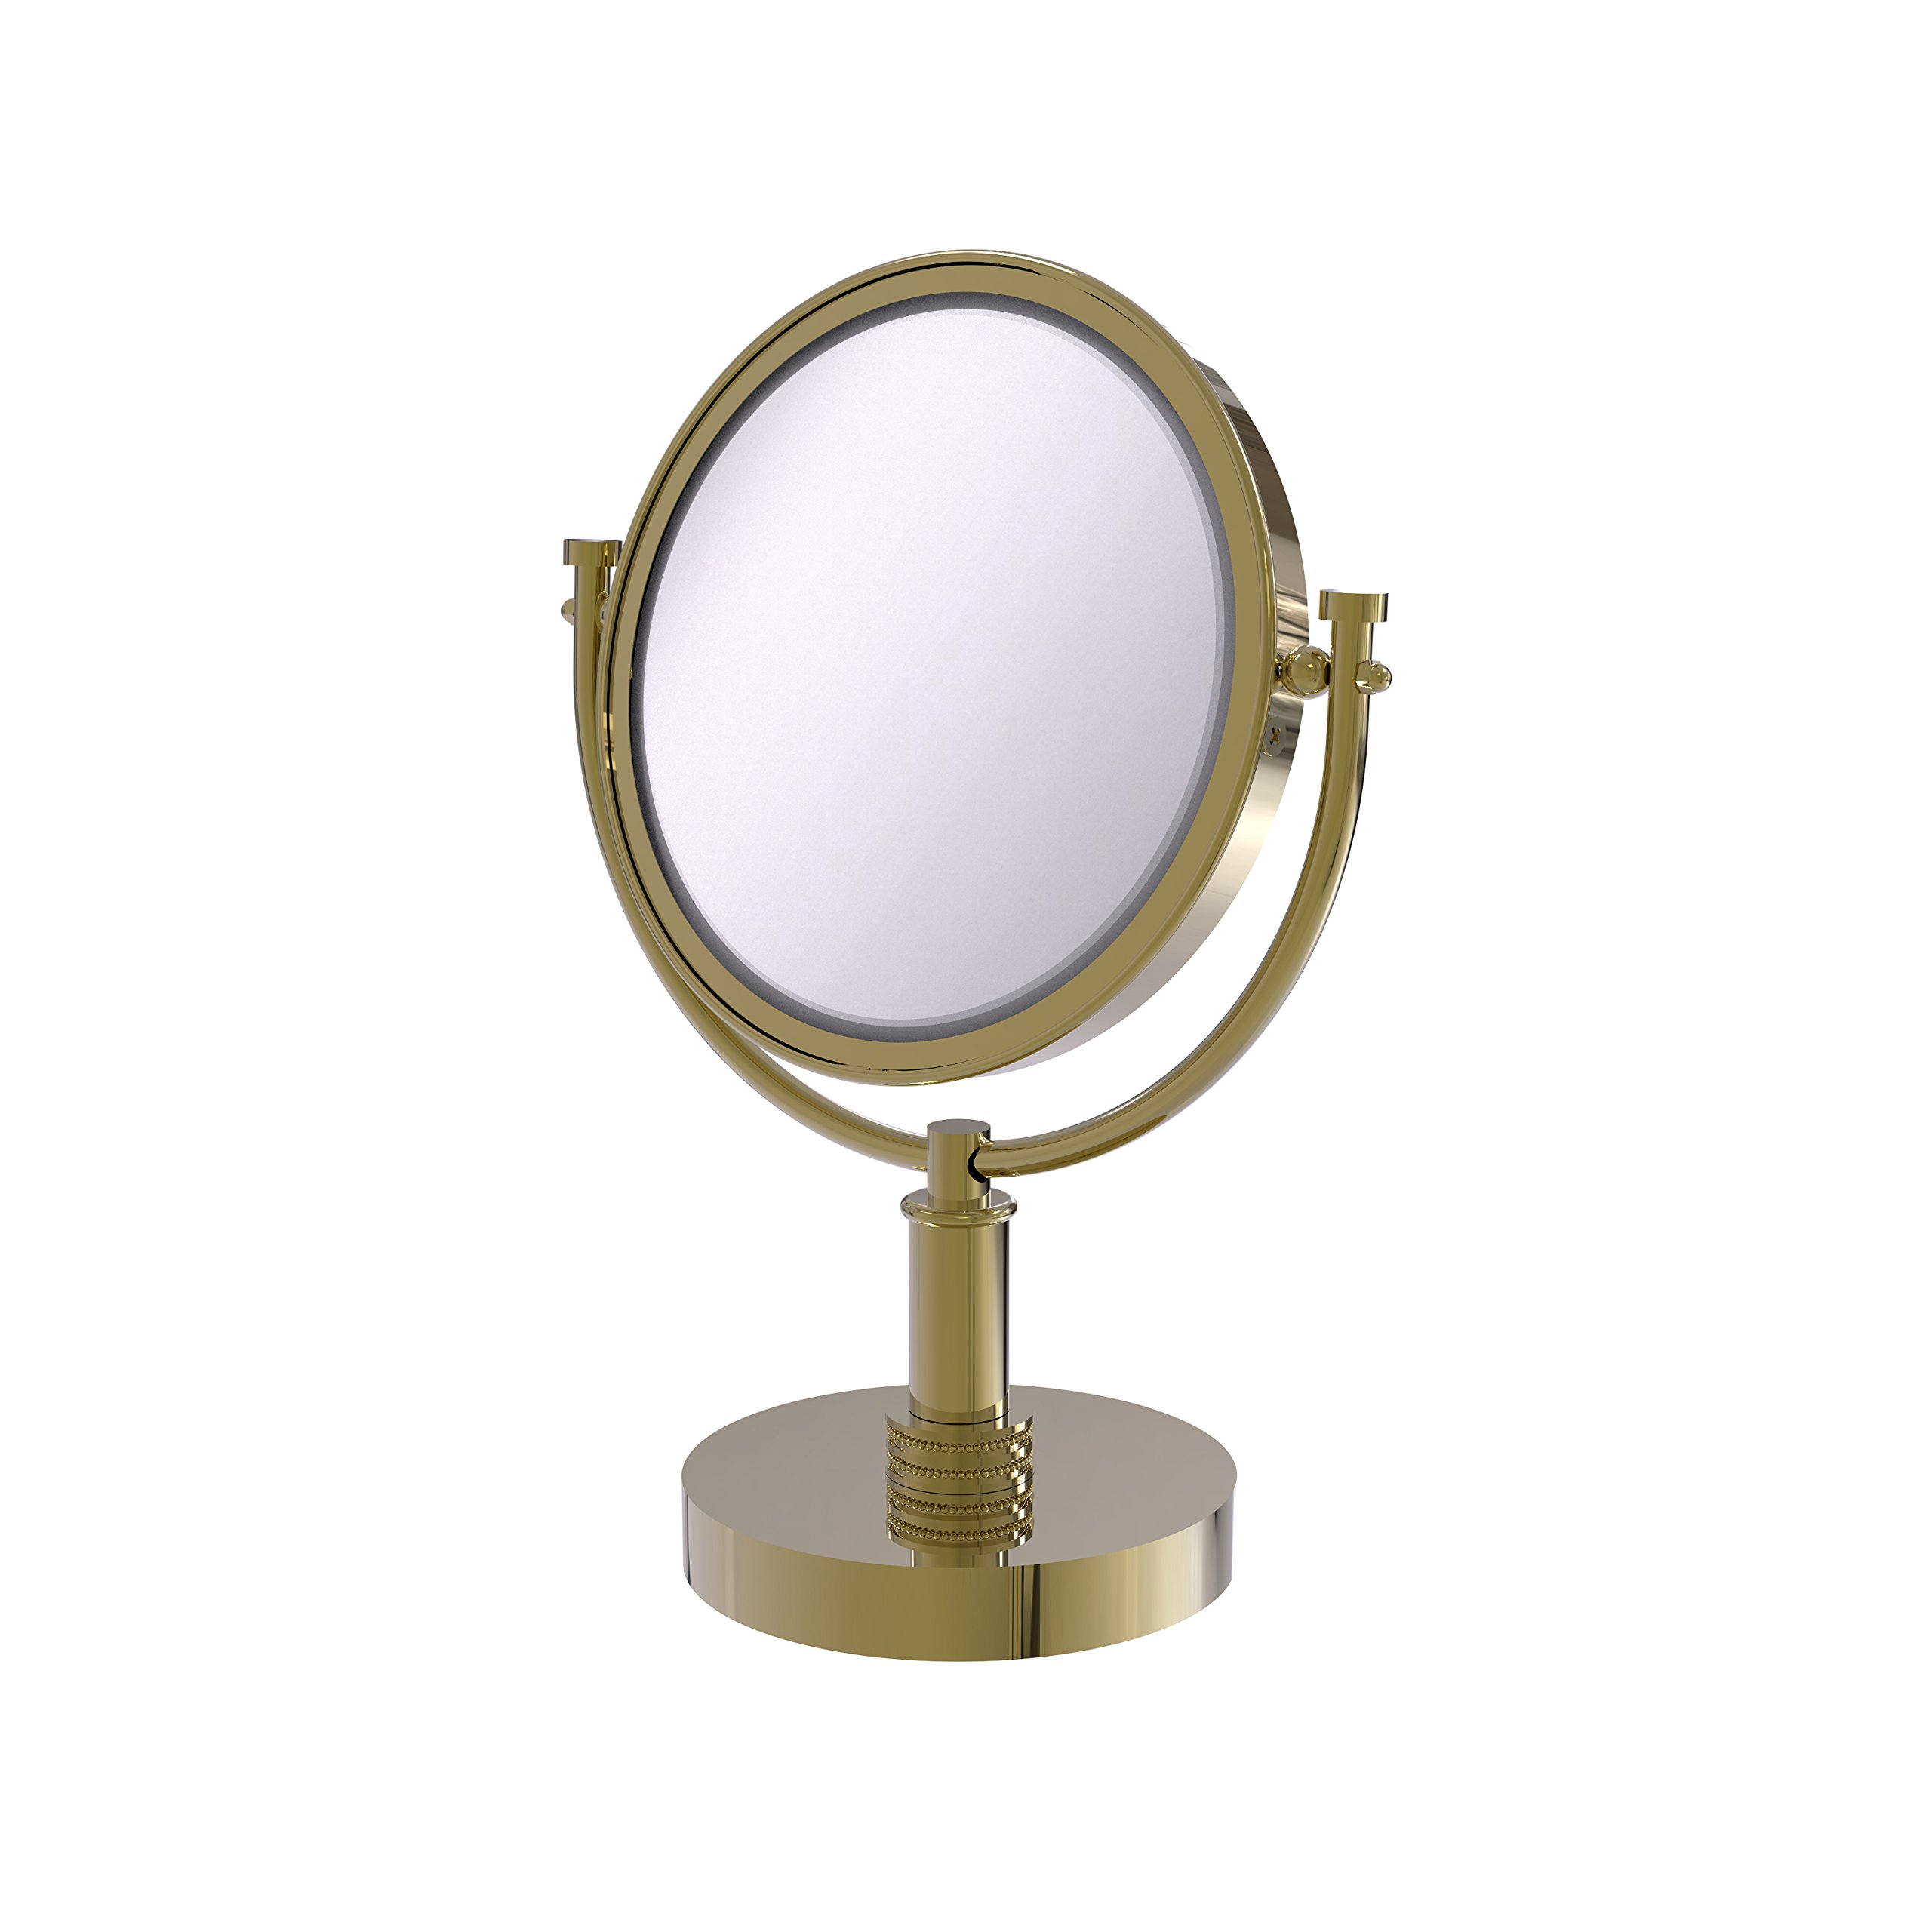 Allied Brass 8 Inch Vanity Top Make-Up Mirror 3X Magnification DM-4D/3X - Unlacquered Brass